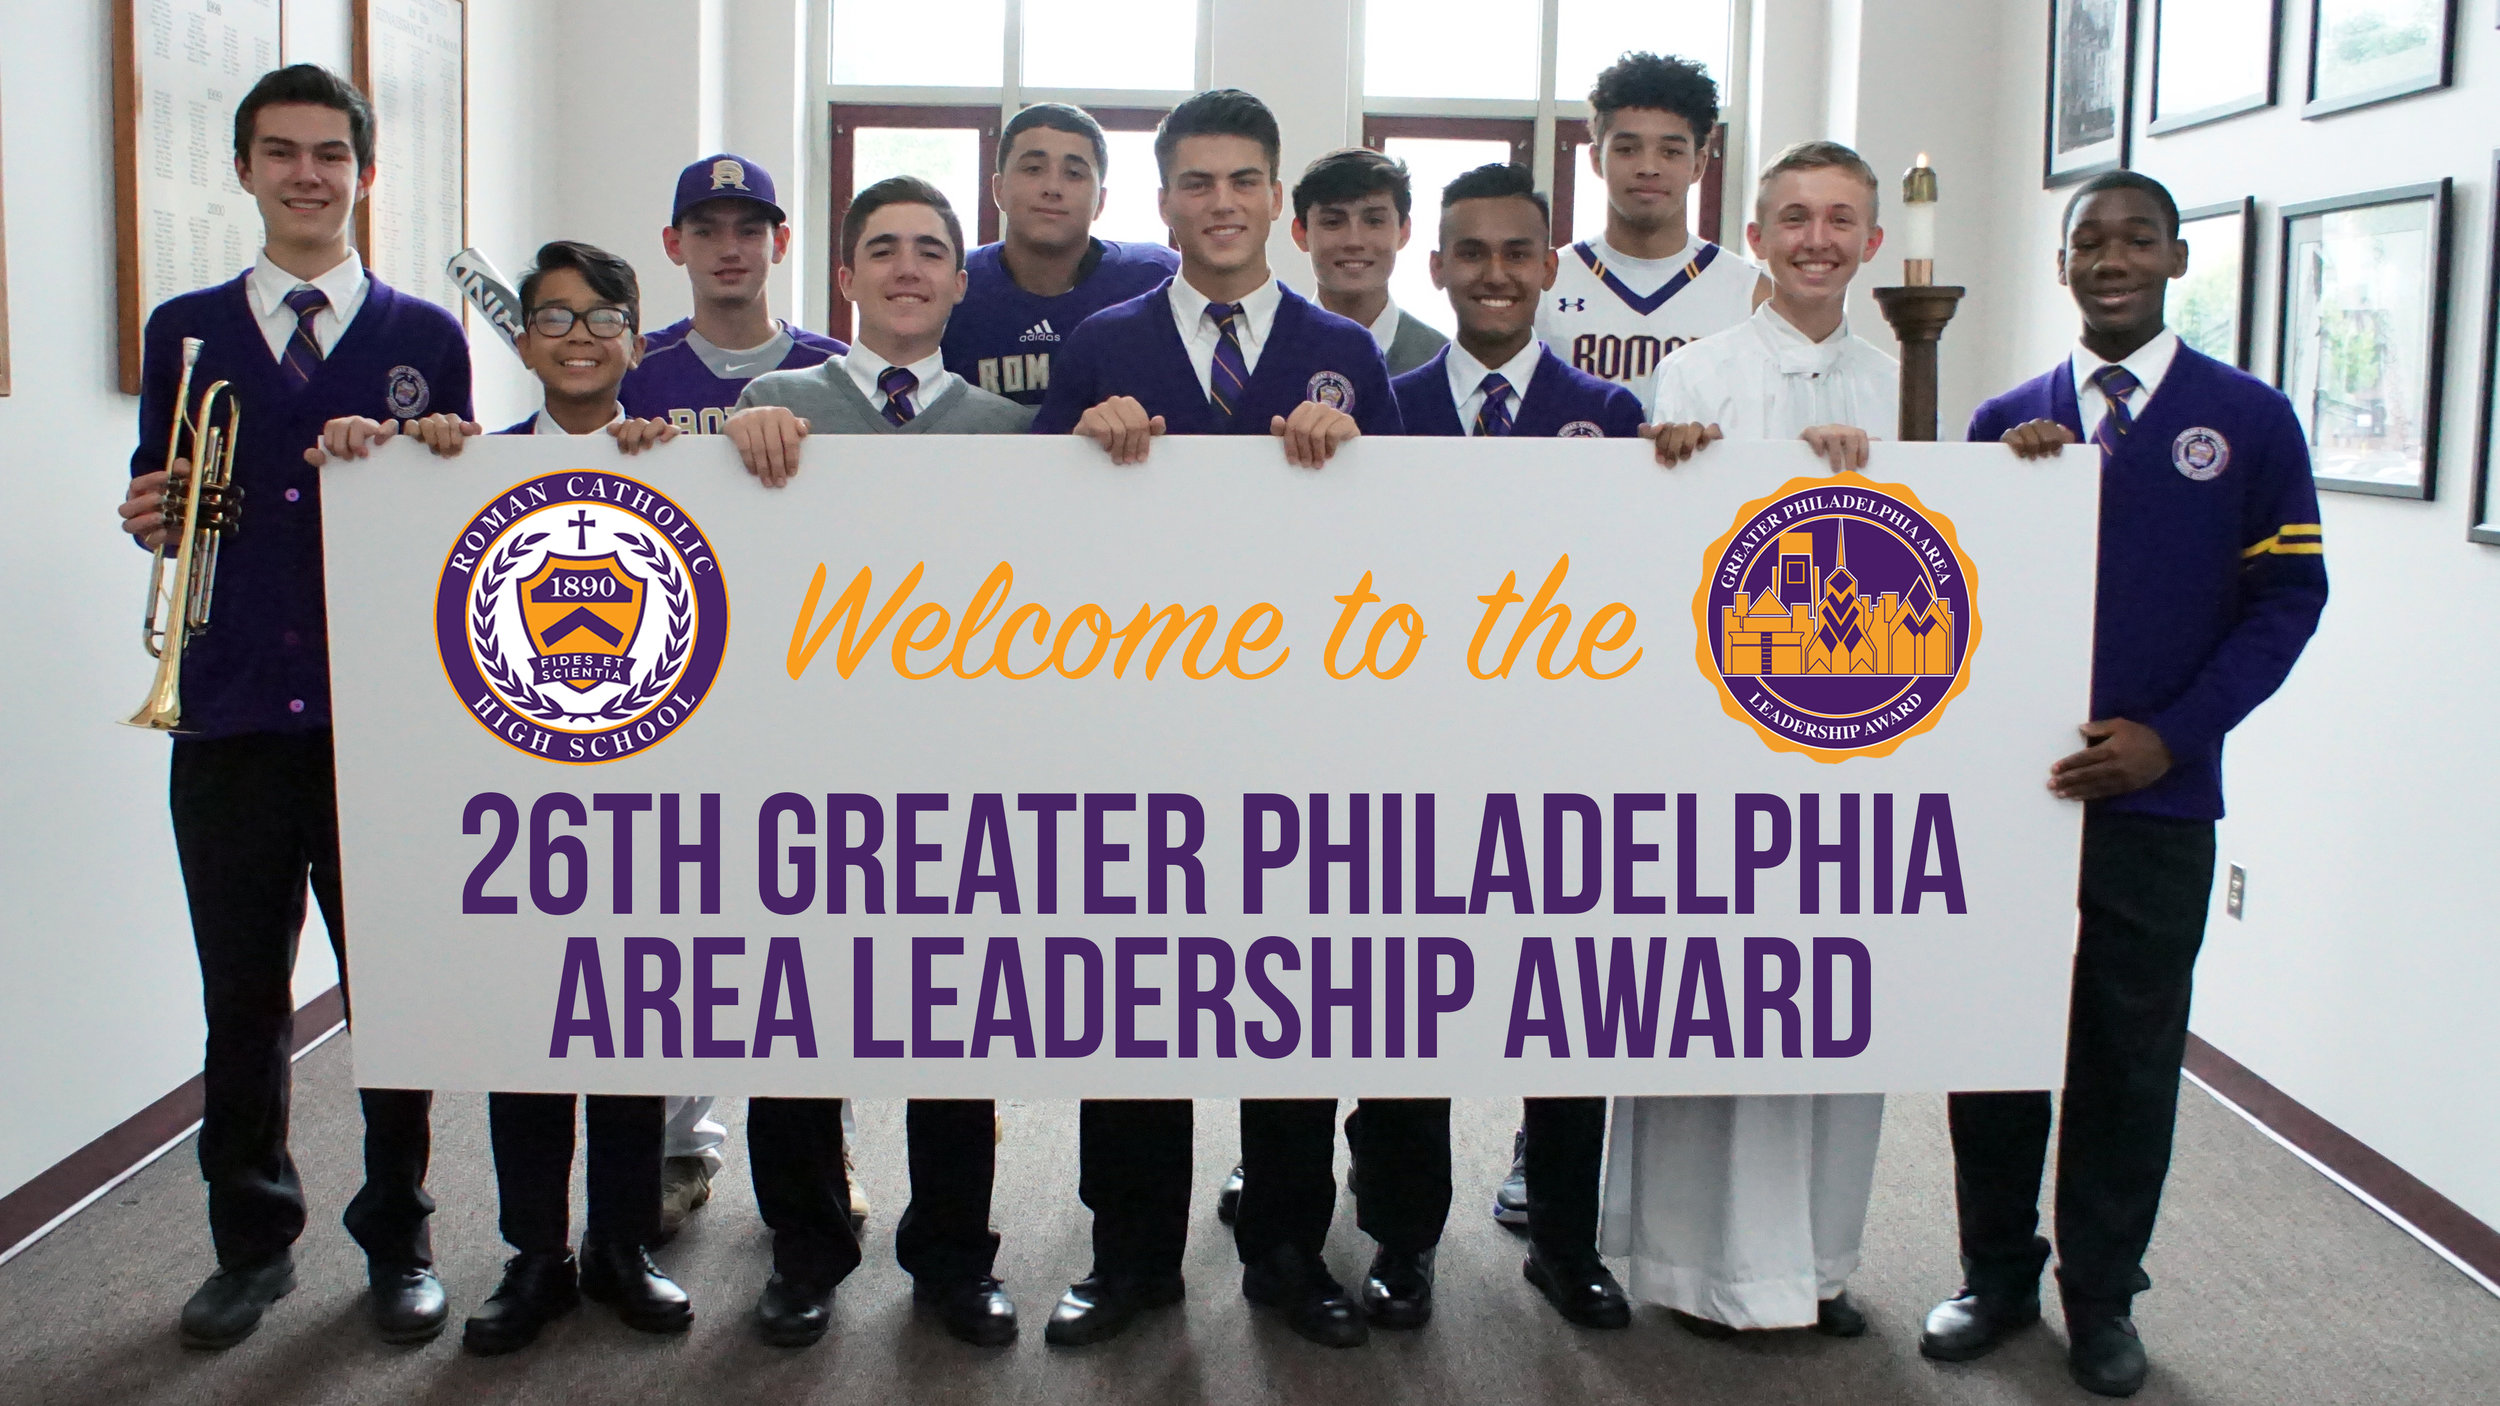 Introduction Photo for 26GPALA Event Presentation  (The Photo is provided by Roman Catholic High School Office of Admissions. The 26GPALA logo and RCHS logo are copyright of Roman Catholic High School)